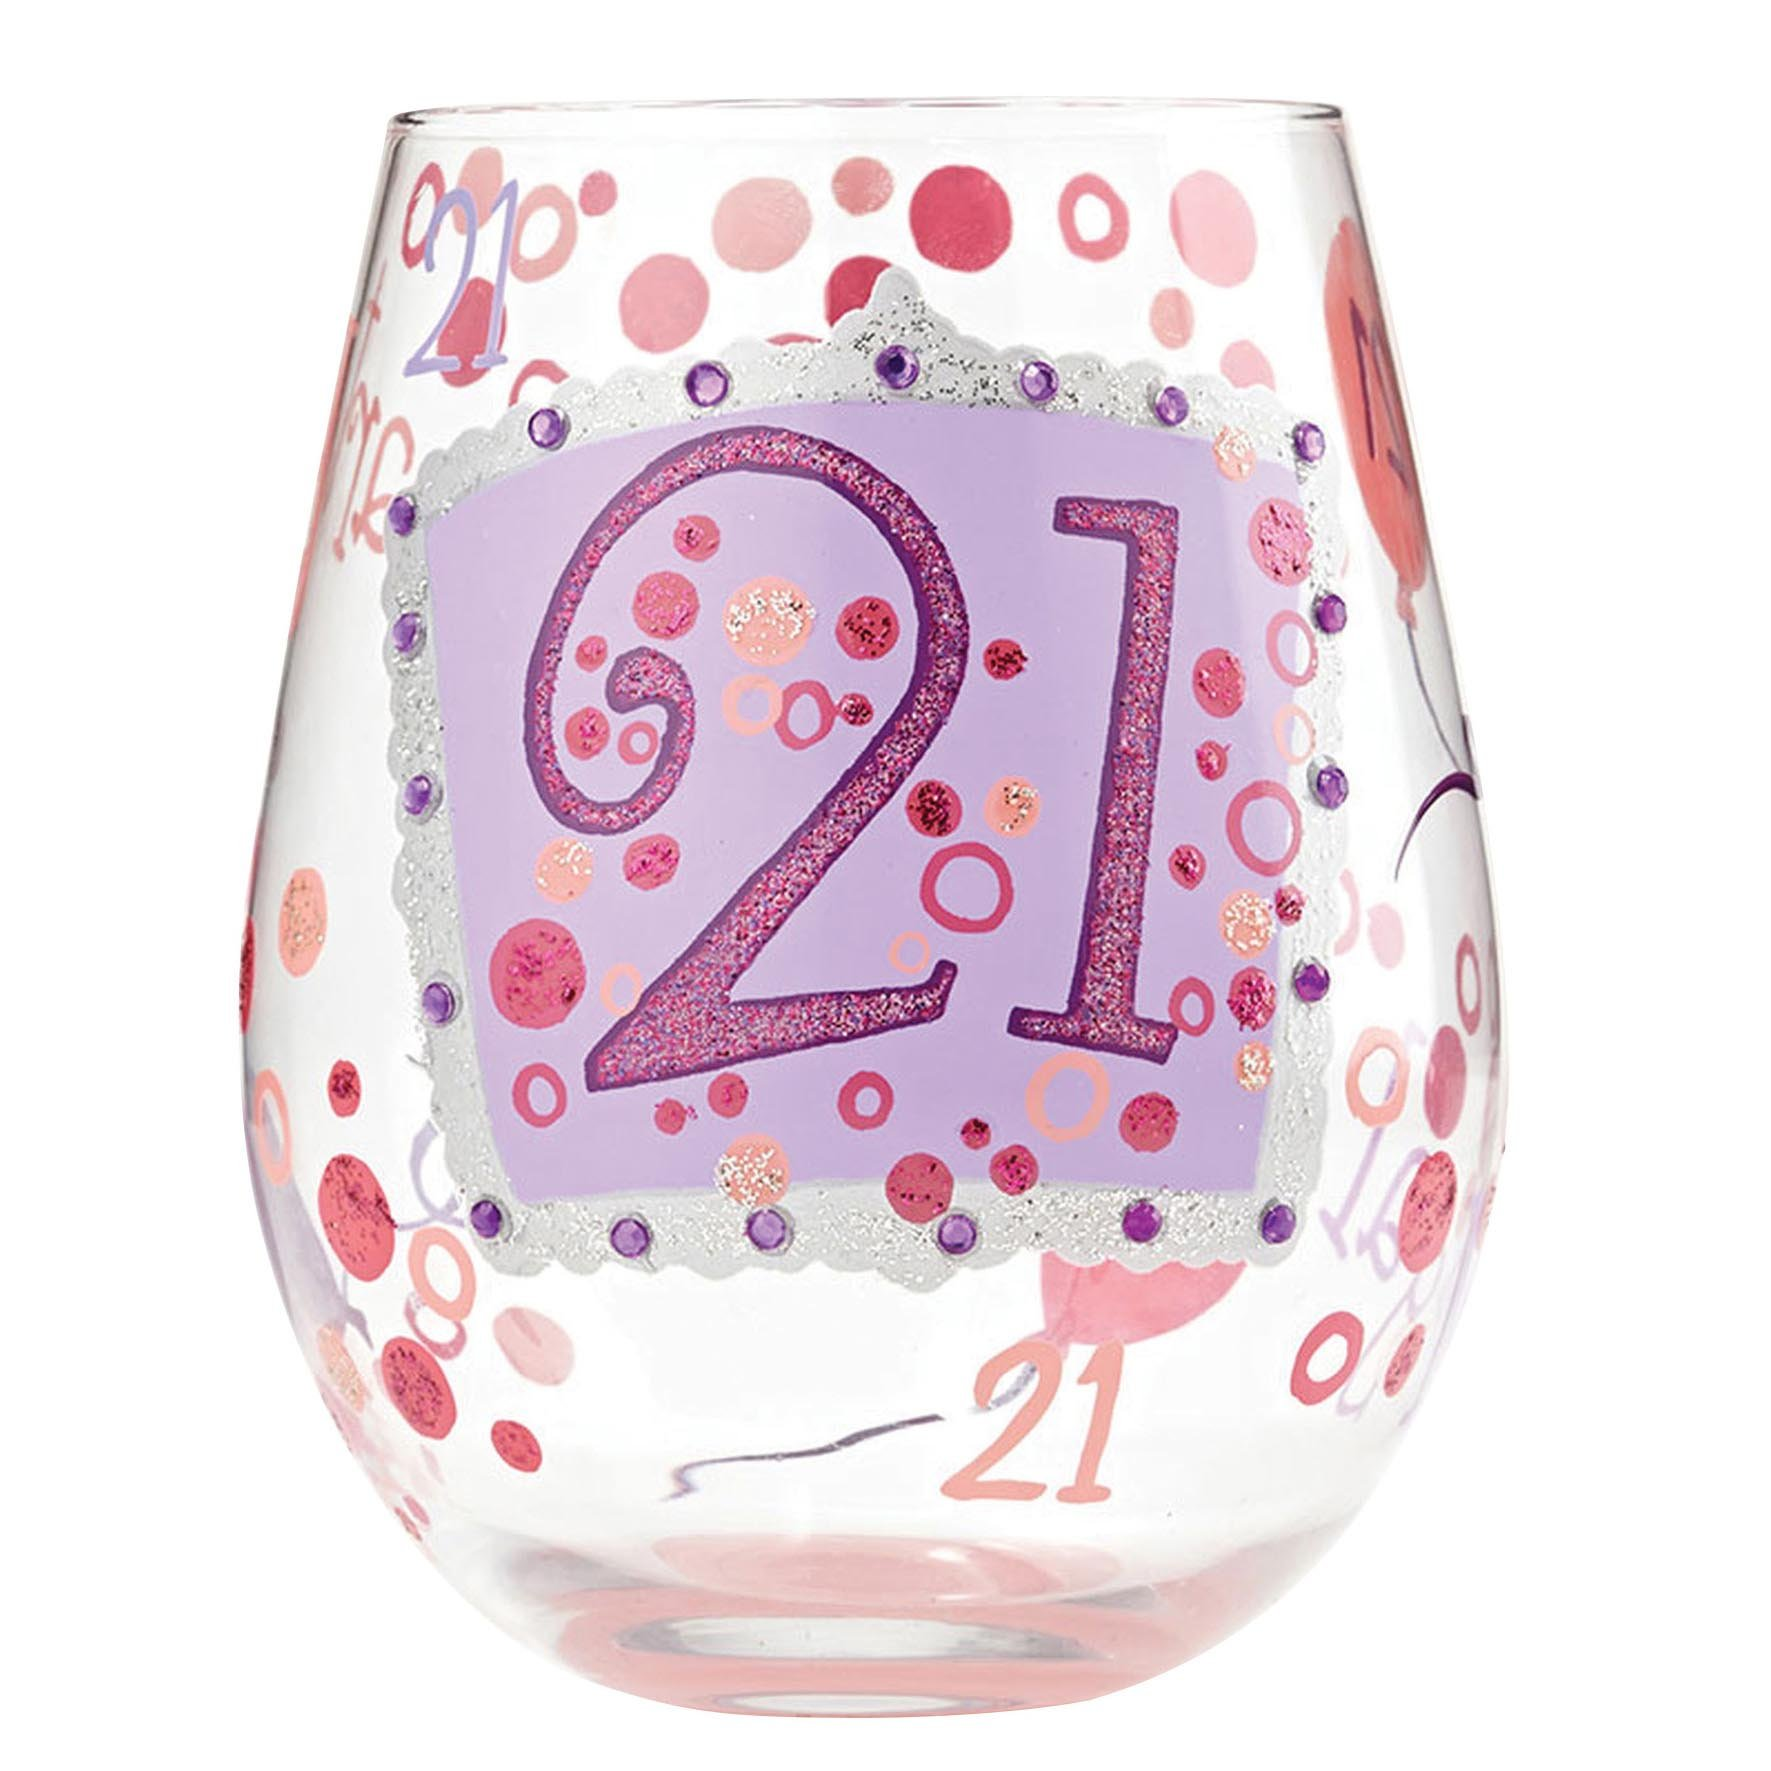 """Designs by Lolita """"21"""" Hand-painted Artisan Stemless Wine Glass, 20 oz."""